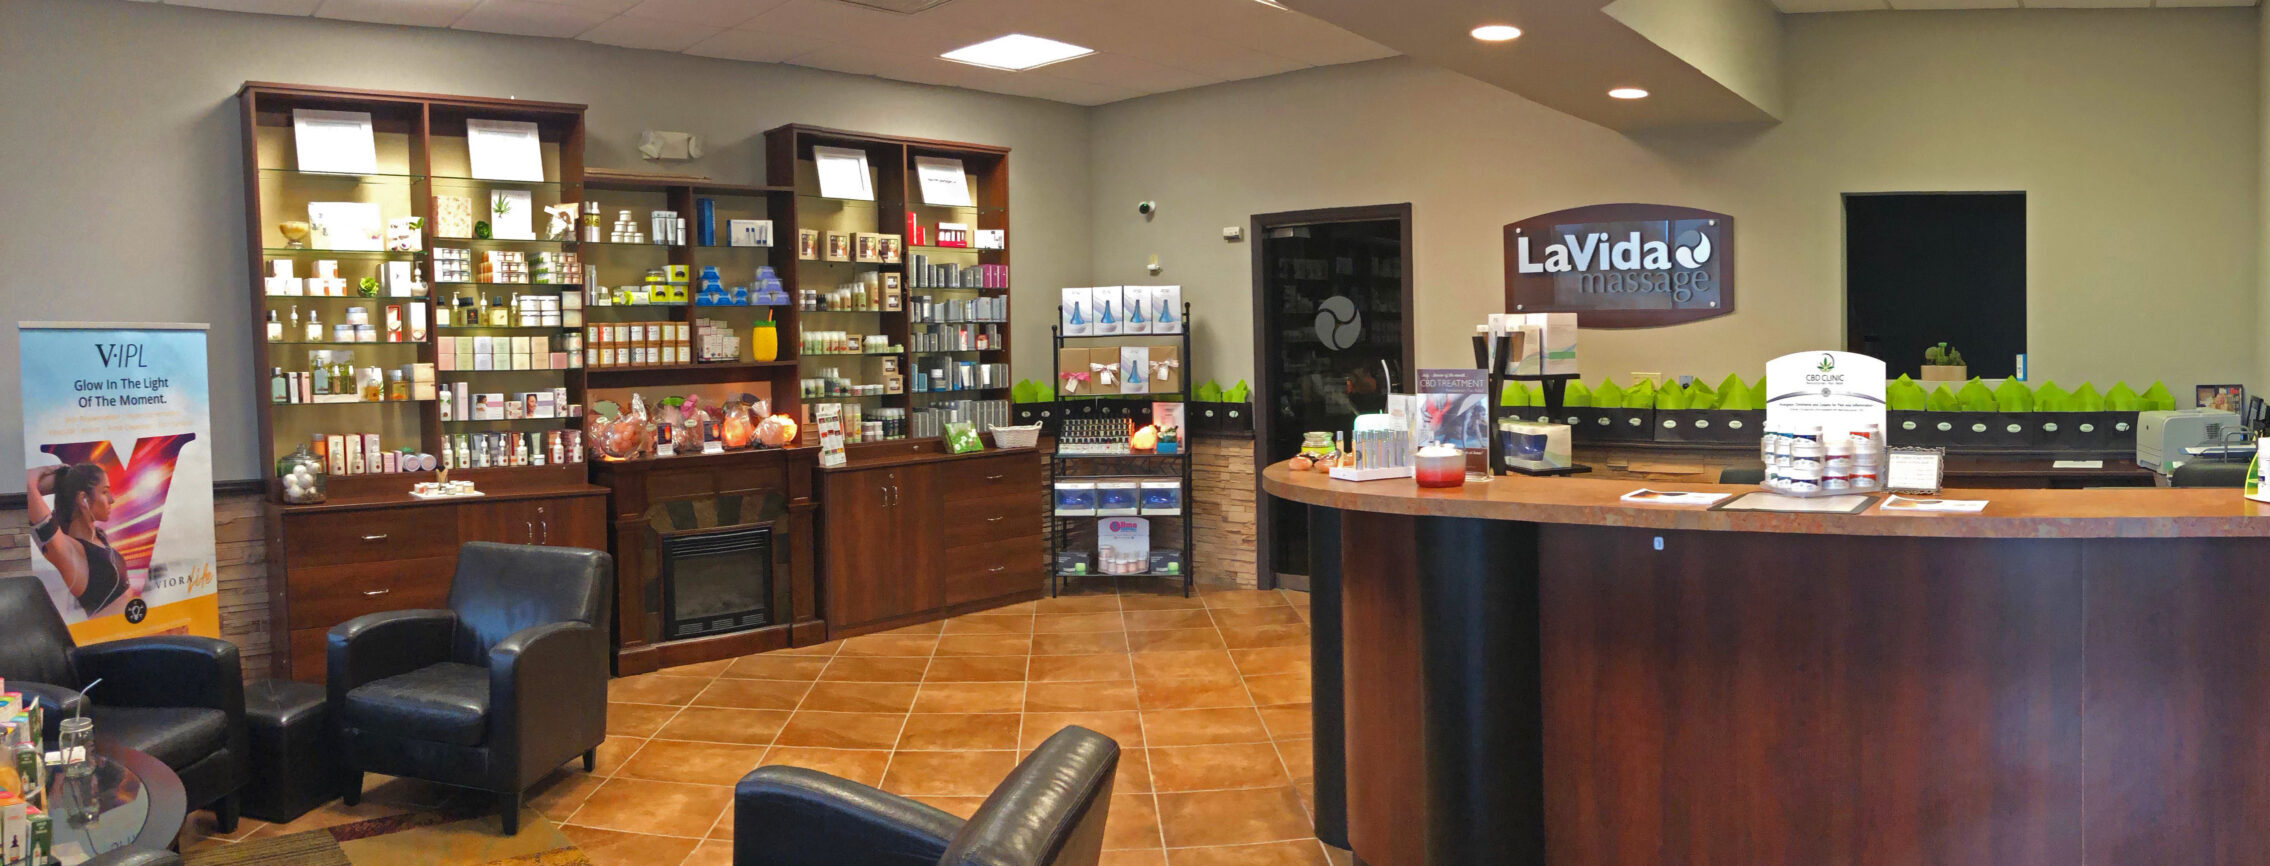 LaVida Massage of Smithtown, Lobby, Massage, Skincare, Hydrafacial, Photofacial, IPL, Hair Removal, Waxing, Ultrasonic, Microdermabrasion, Therapeutic Massage